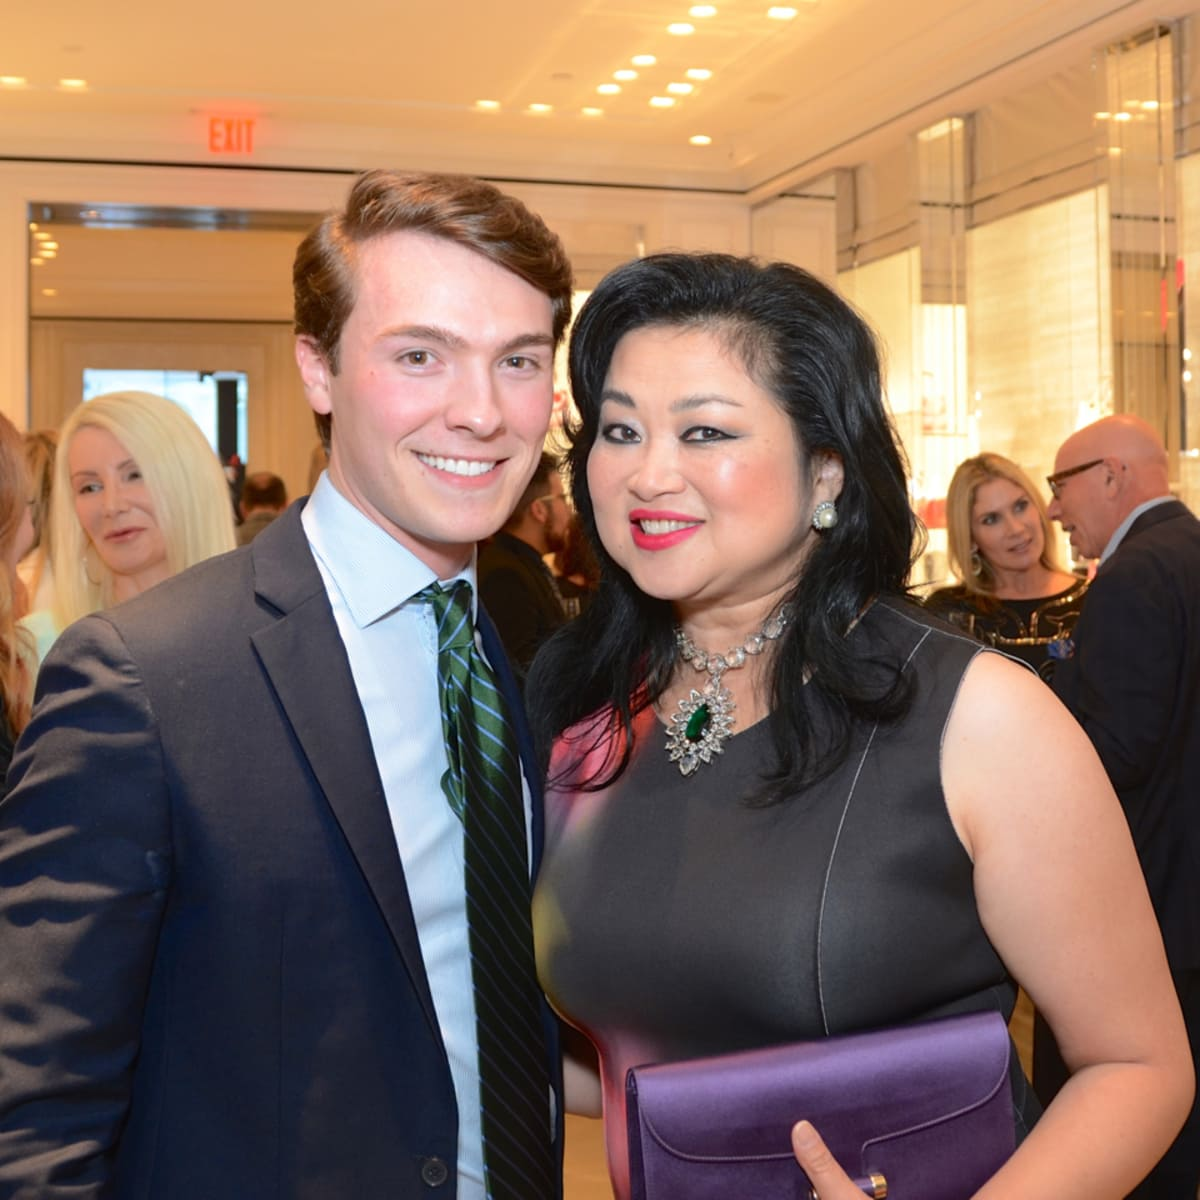 Dior grand opening William Finnorn, Gigi Huang